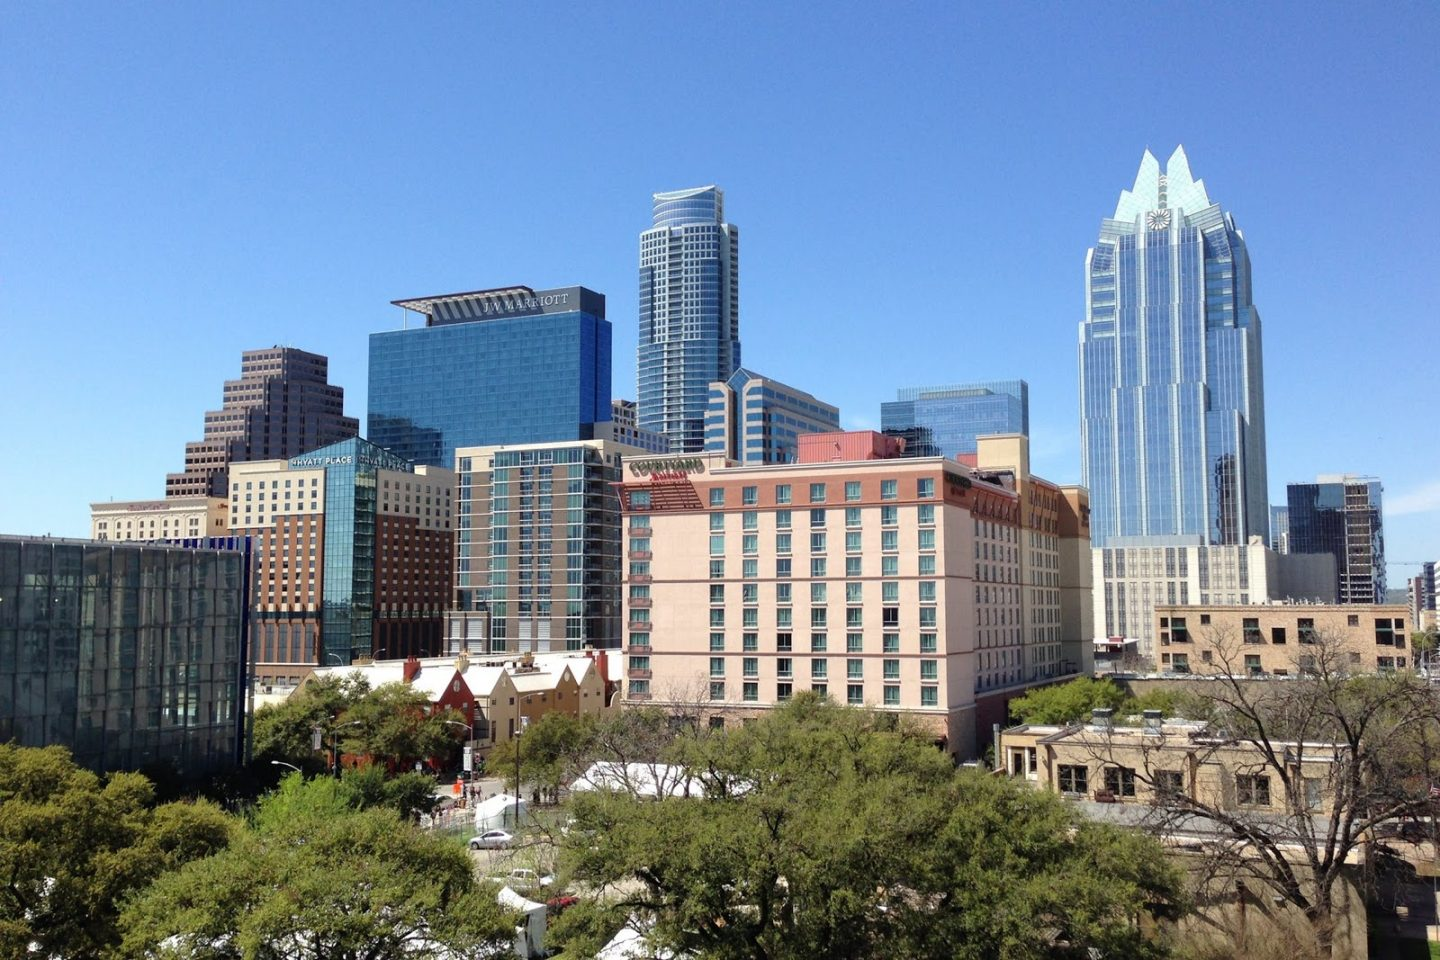 Texas cities: Austin downtown skyline